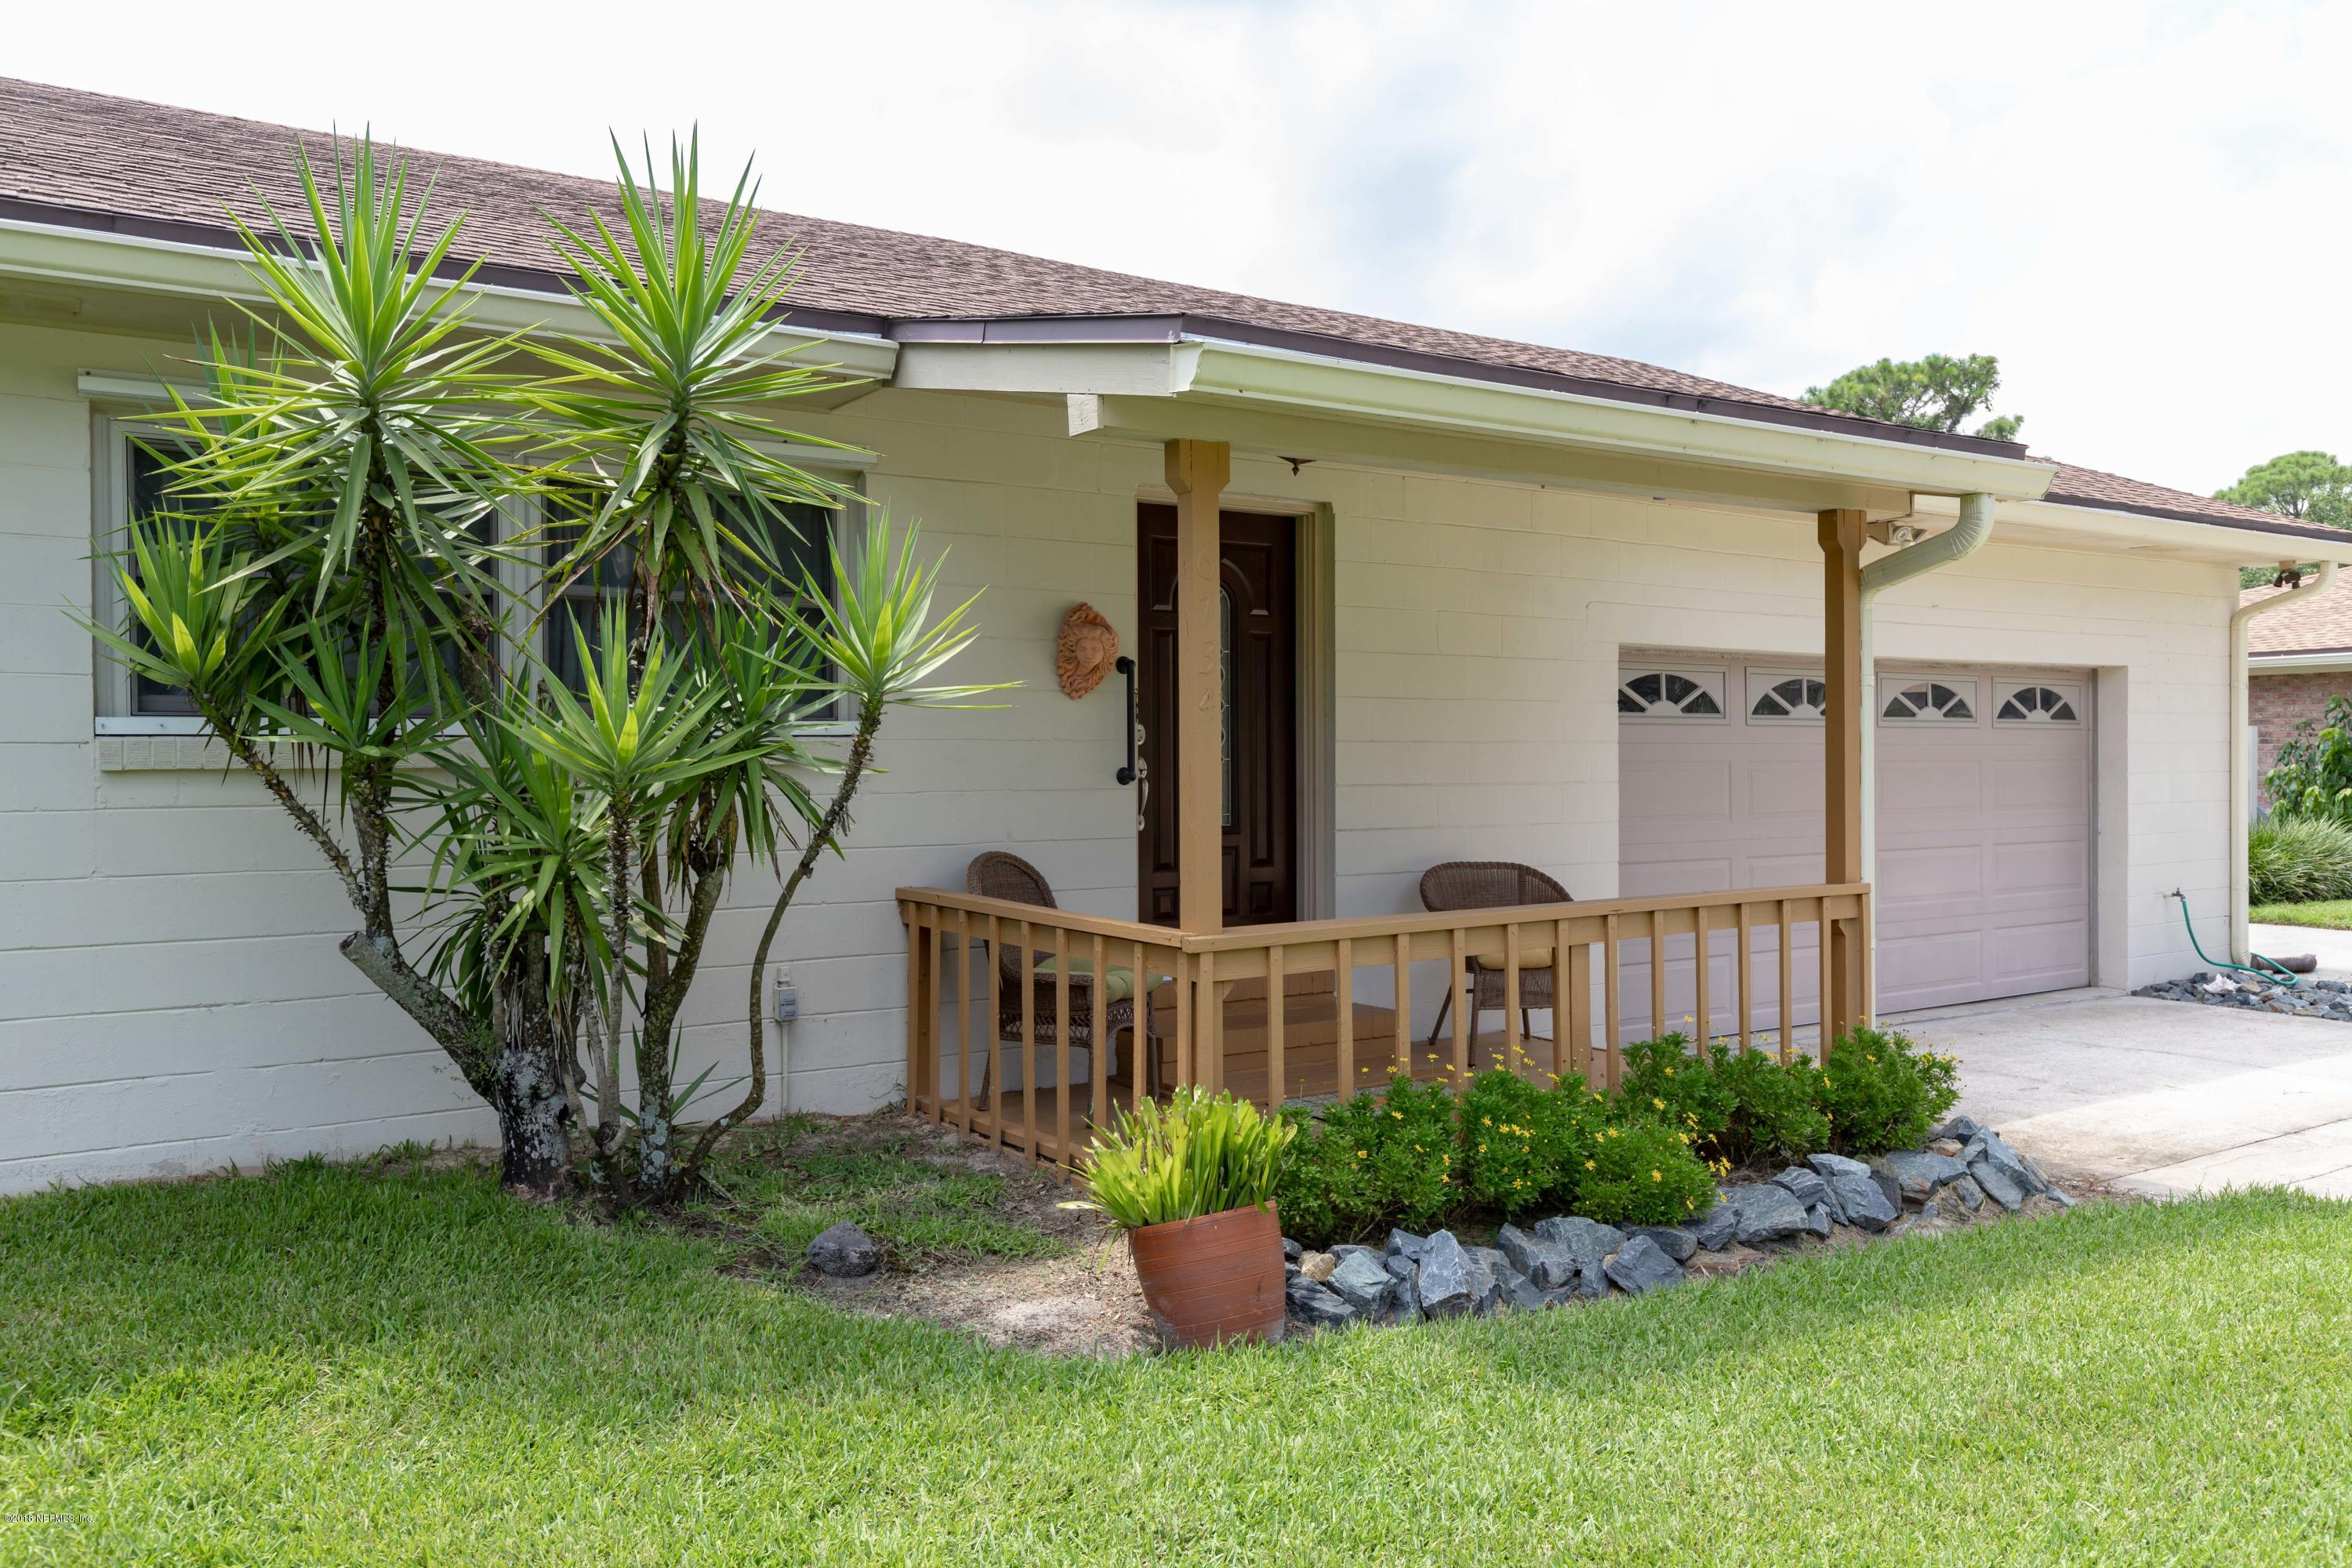 6734 RAMOTH, JACKSONVILLE, FLORIDA 32226, 3 Bedrooms Bedrooms, ,2 BathroomsBathrooms,Residential - single family,For sale,RAMOTH,954072